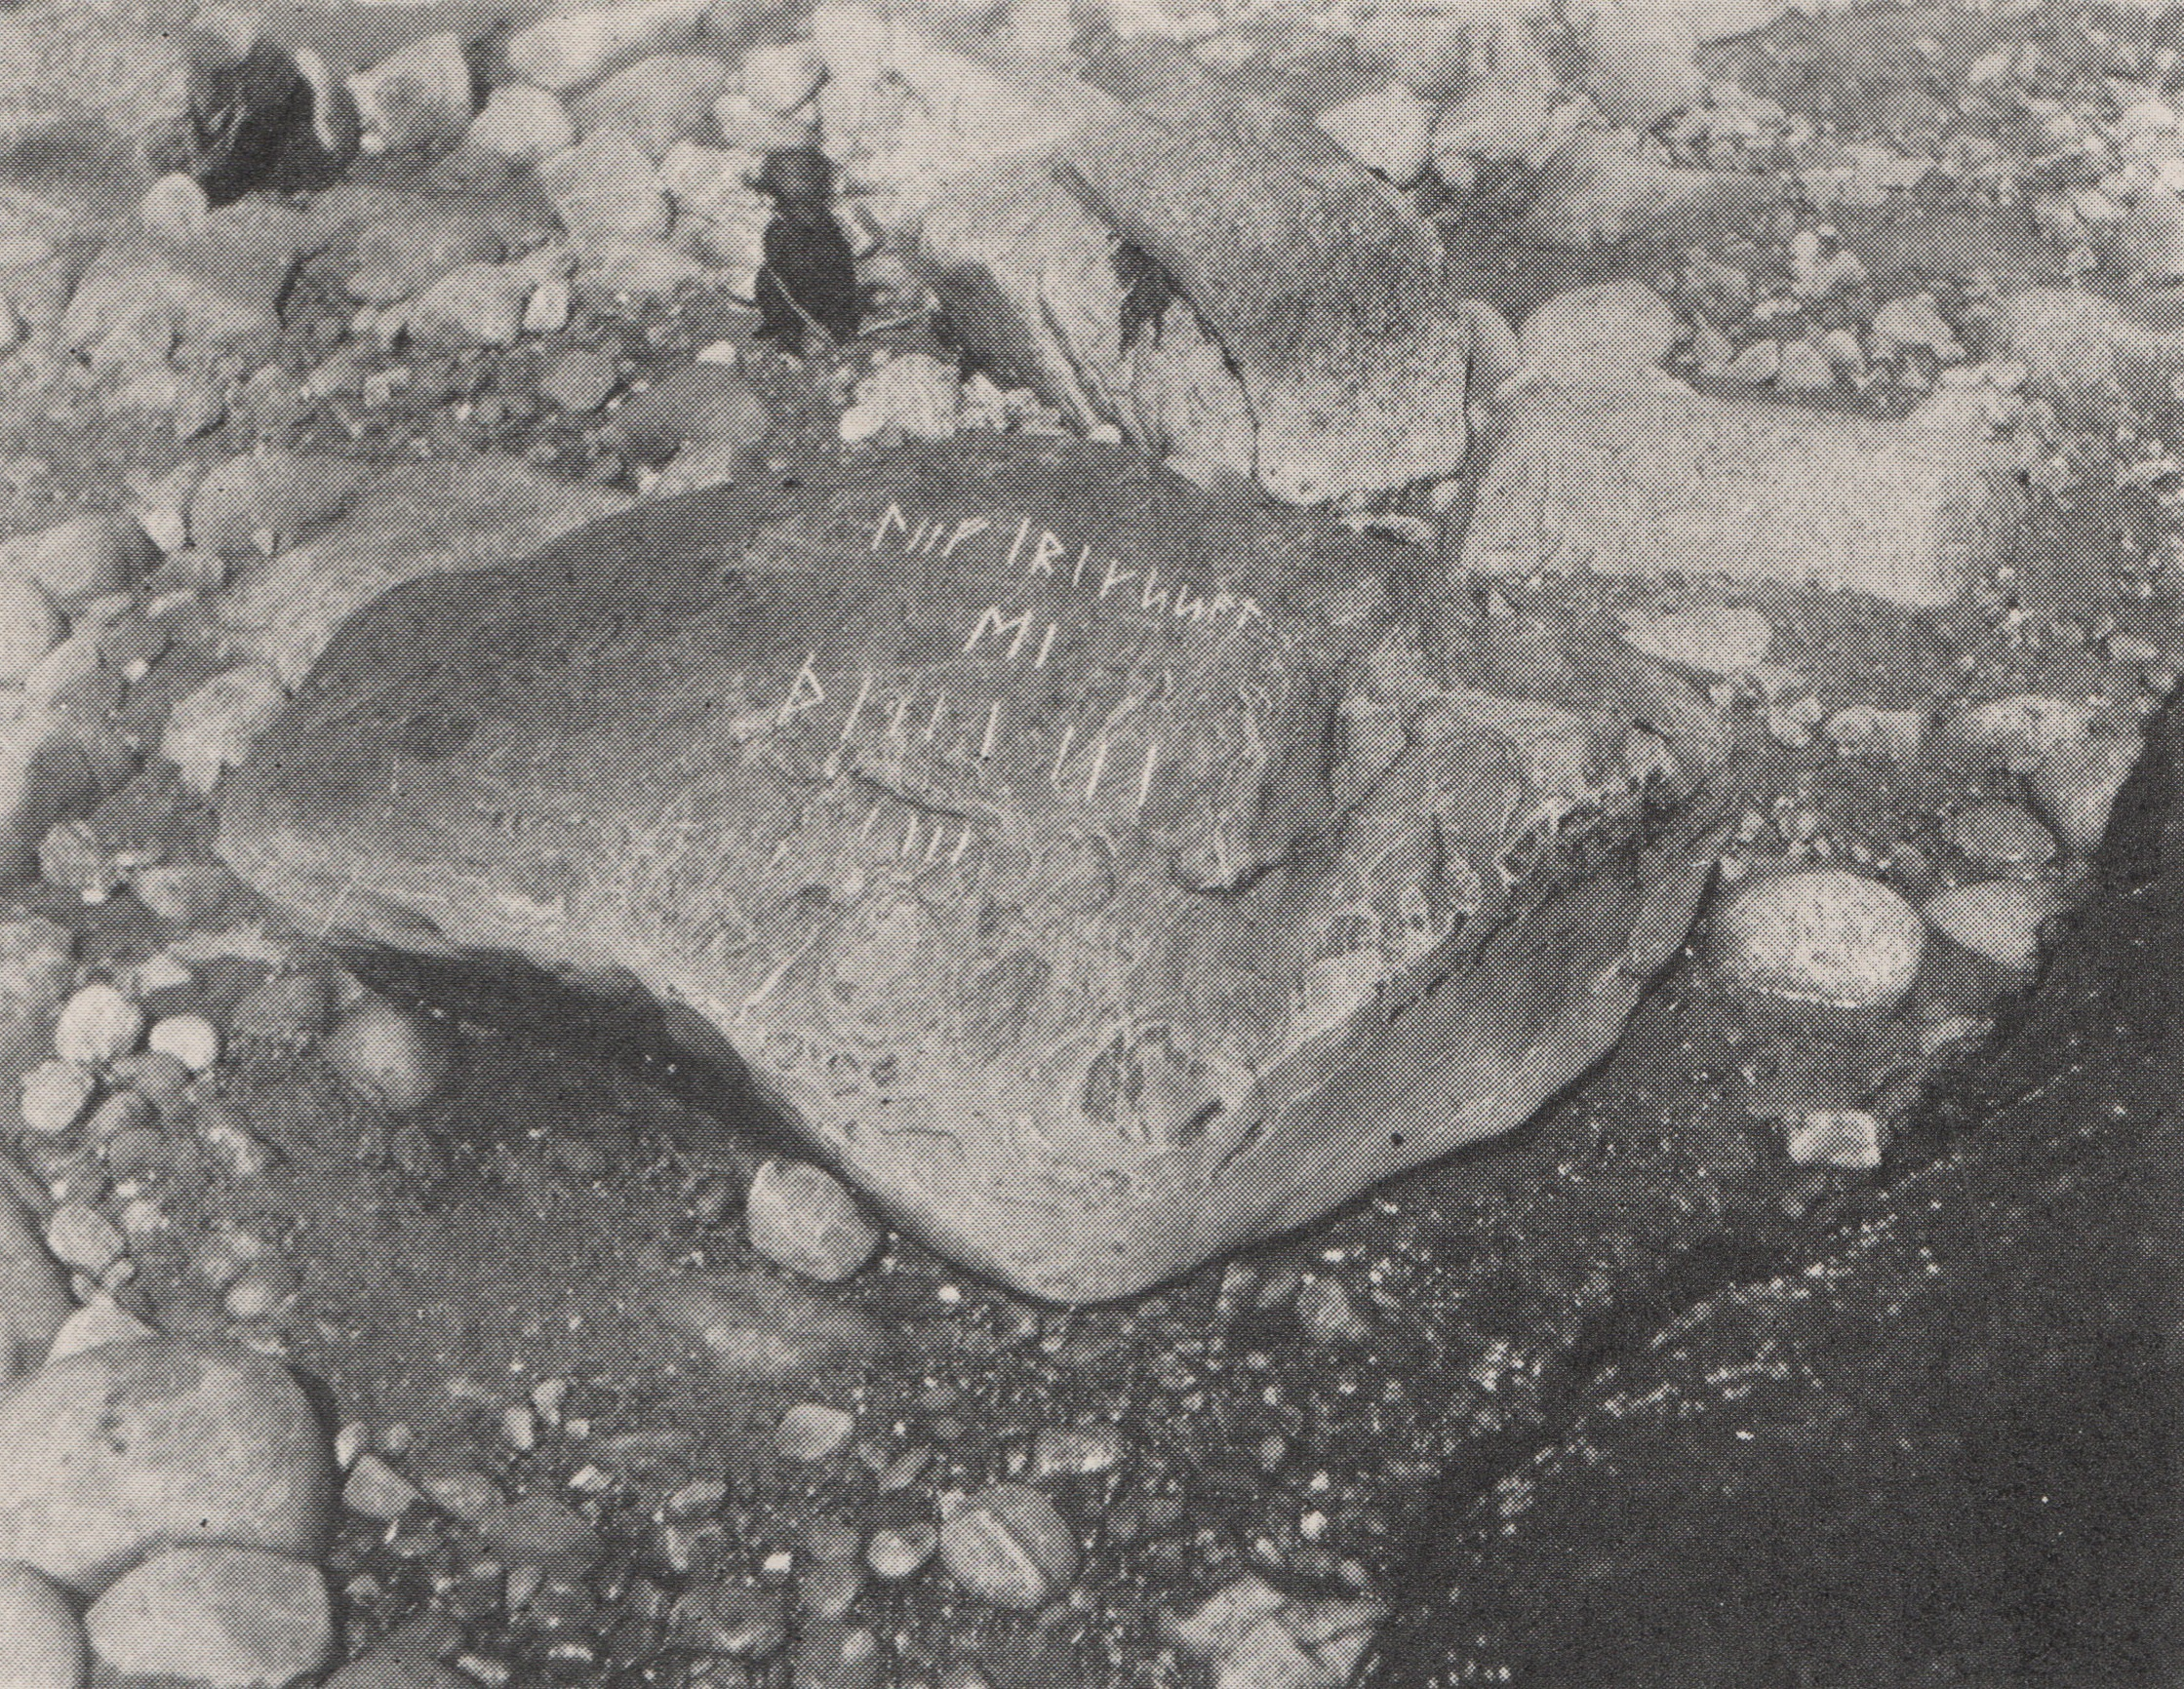 Original Norse inscription discovered on the Southwestern shore of Nomans Island.